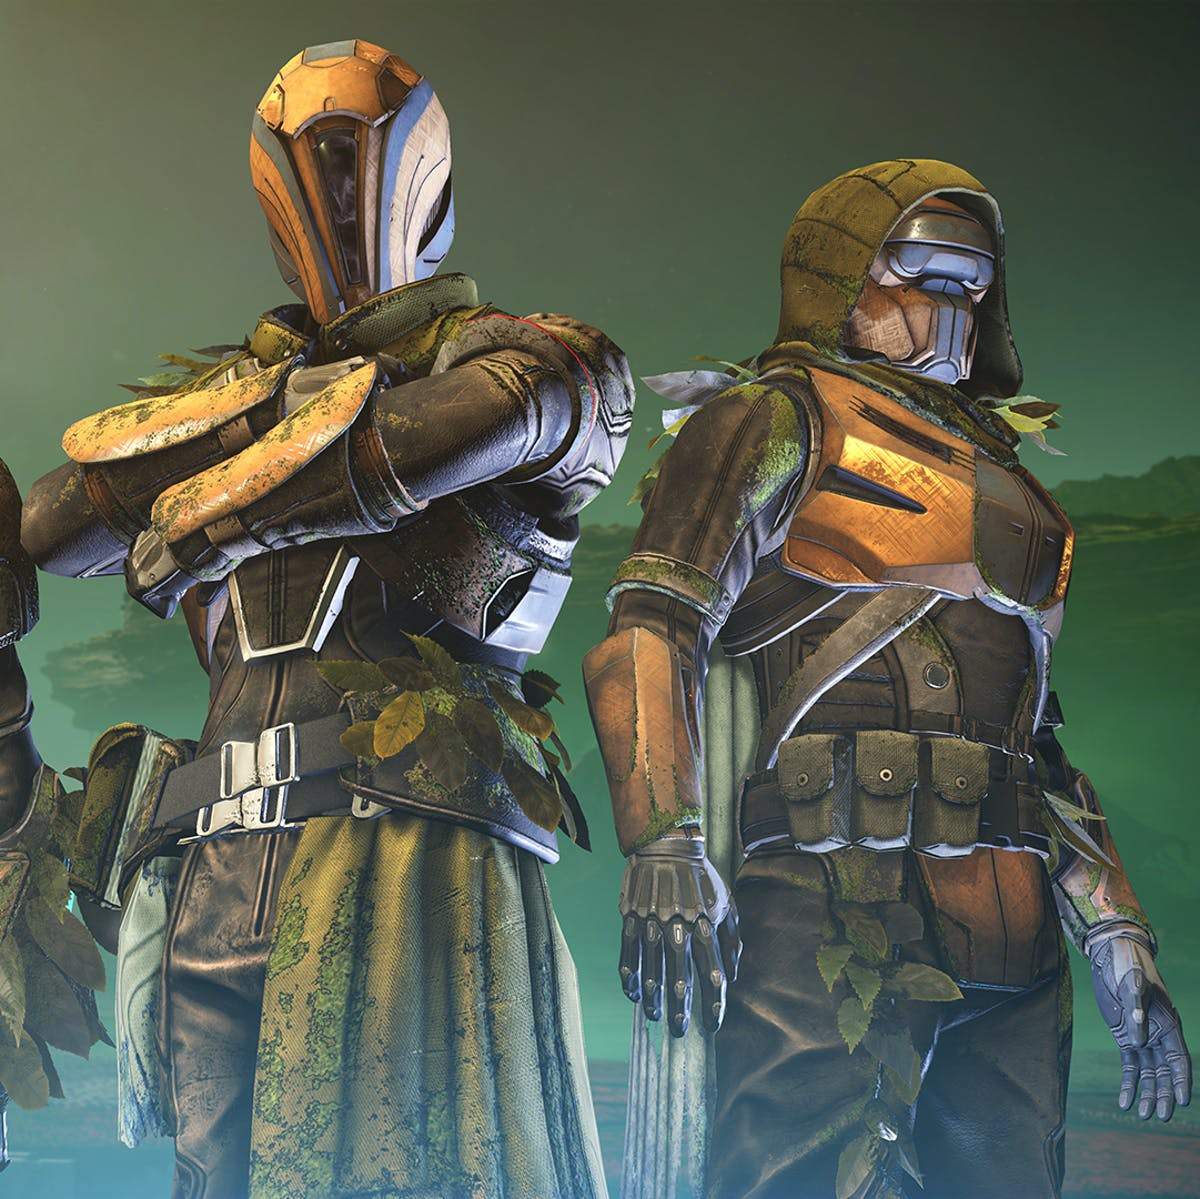 'Destiny 2: Shadowkeep' makes Fortnite's battle pass system way better